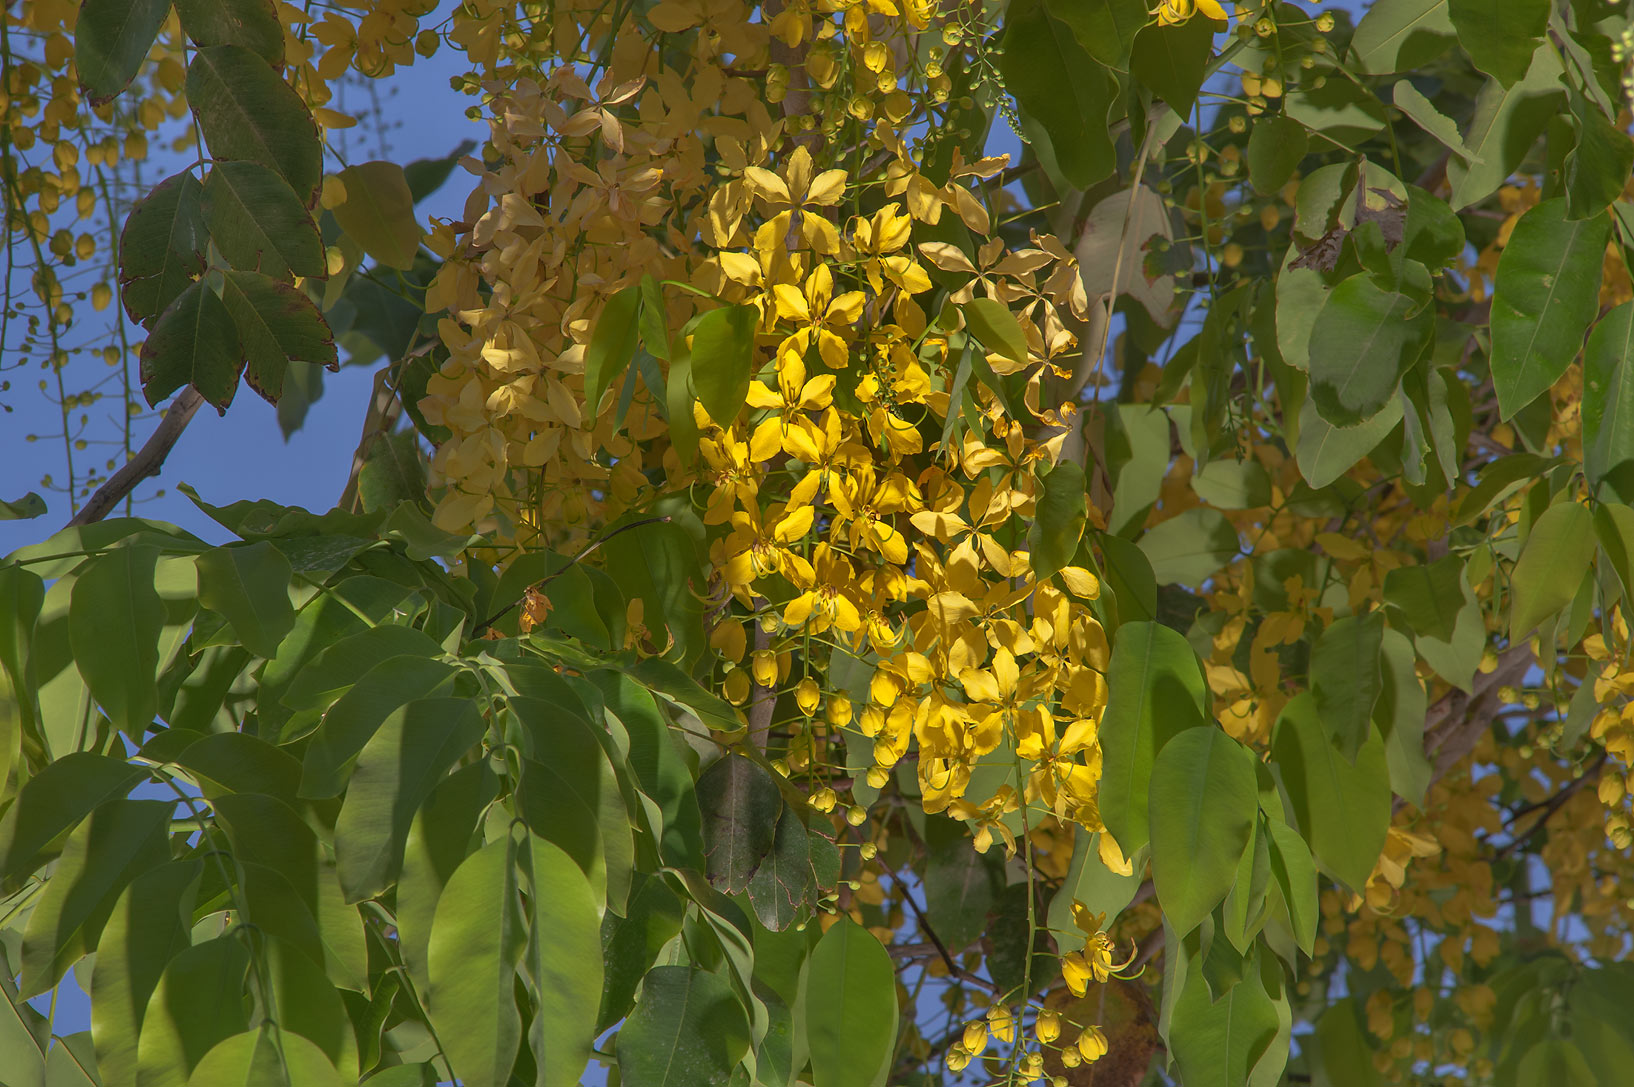 Flowers of golden shower tree (Cassia fistula) in Aspire Park at morning. Doha, Qatar